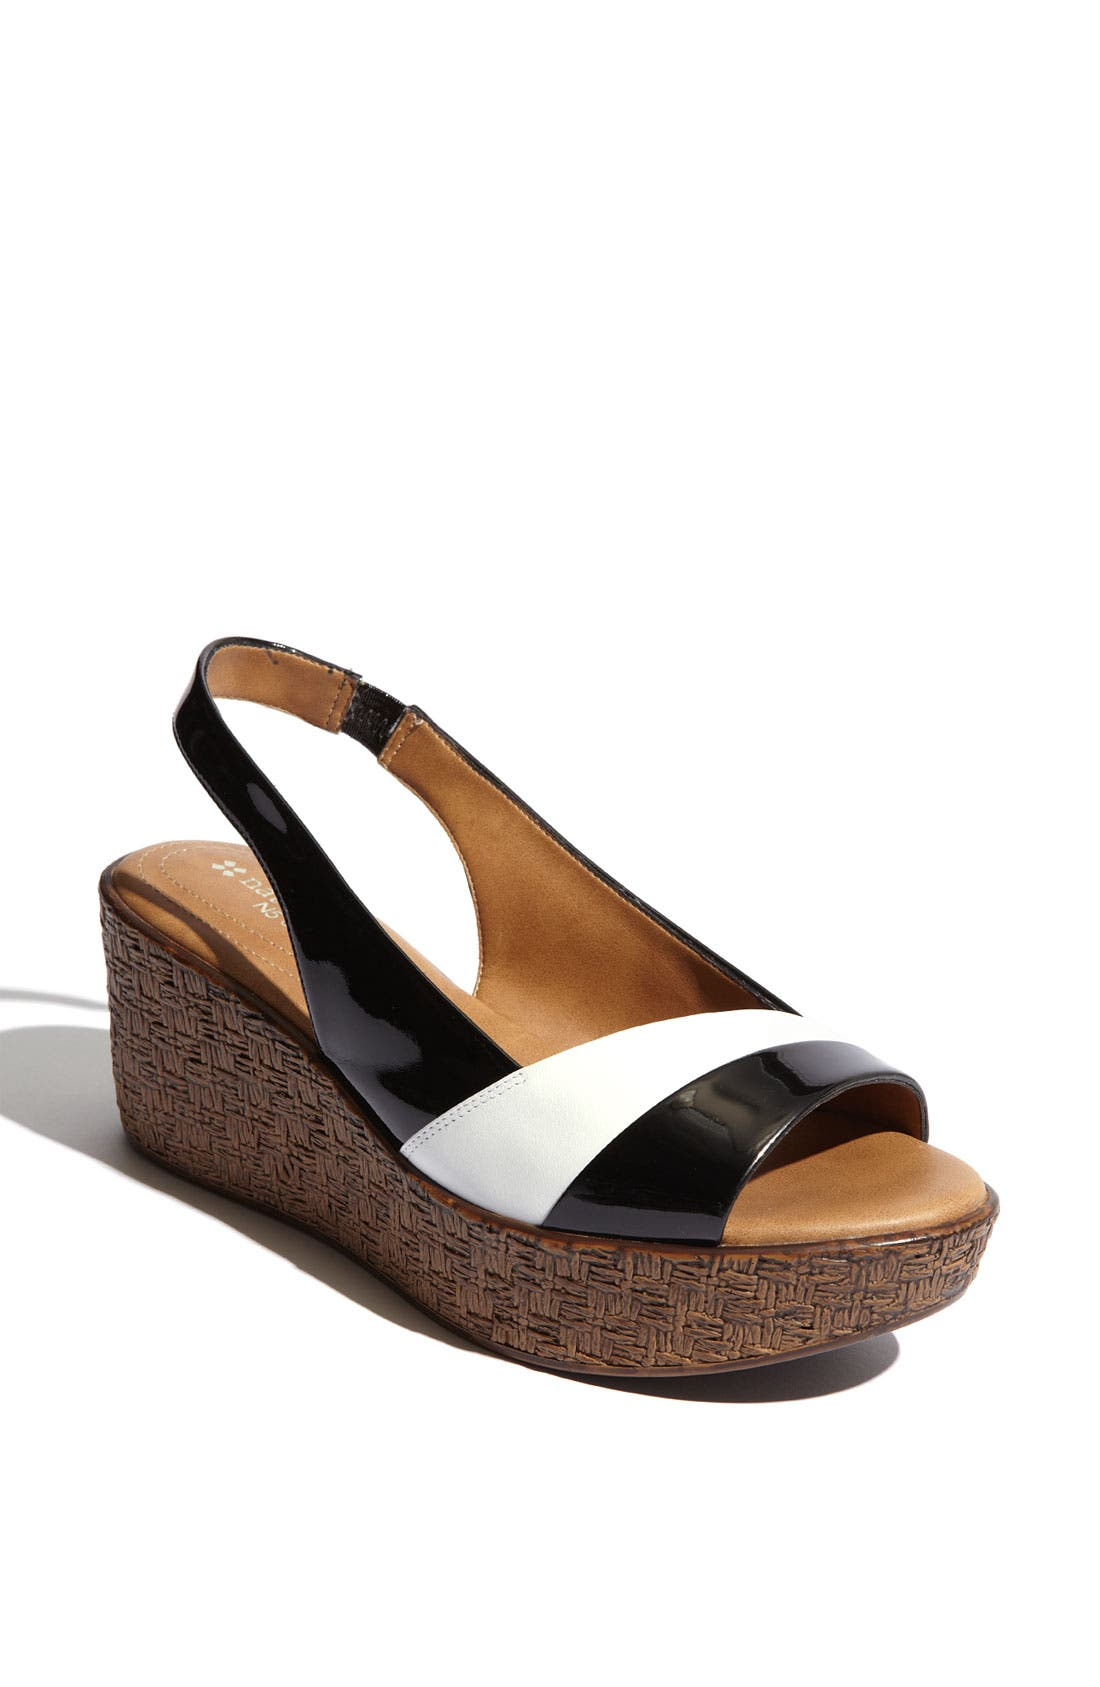 Main Image - Naturalizer 'Ladell' Sandal